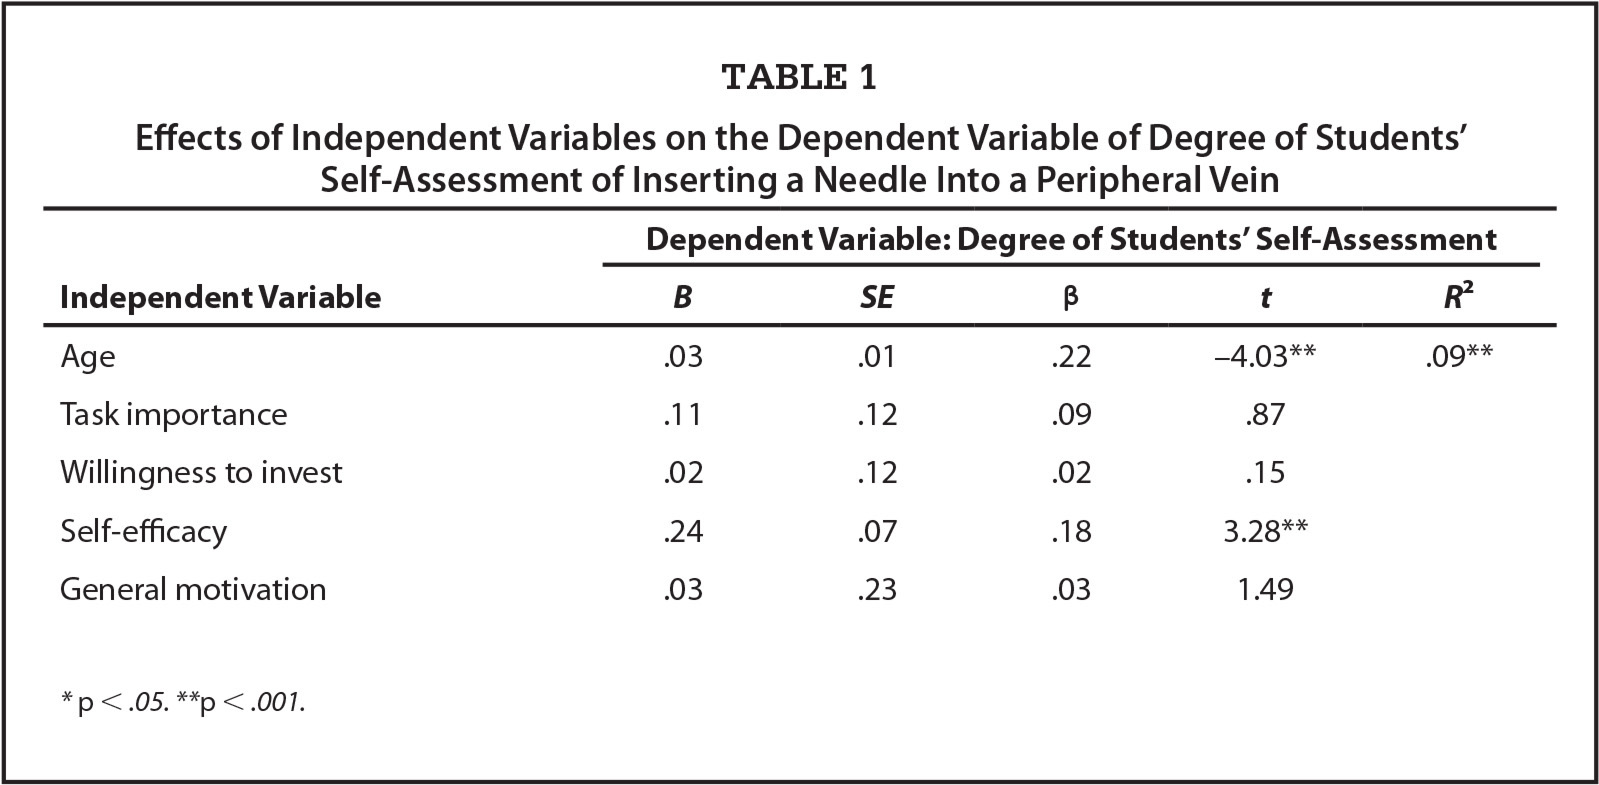 Effects of Independent Variables on the Dependent Variable of Degree of Students' Self-Assessment of Inserting a Needle Into a Peripheral Vein